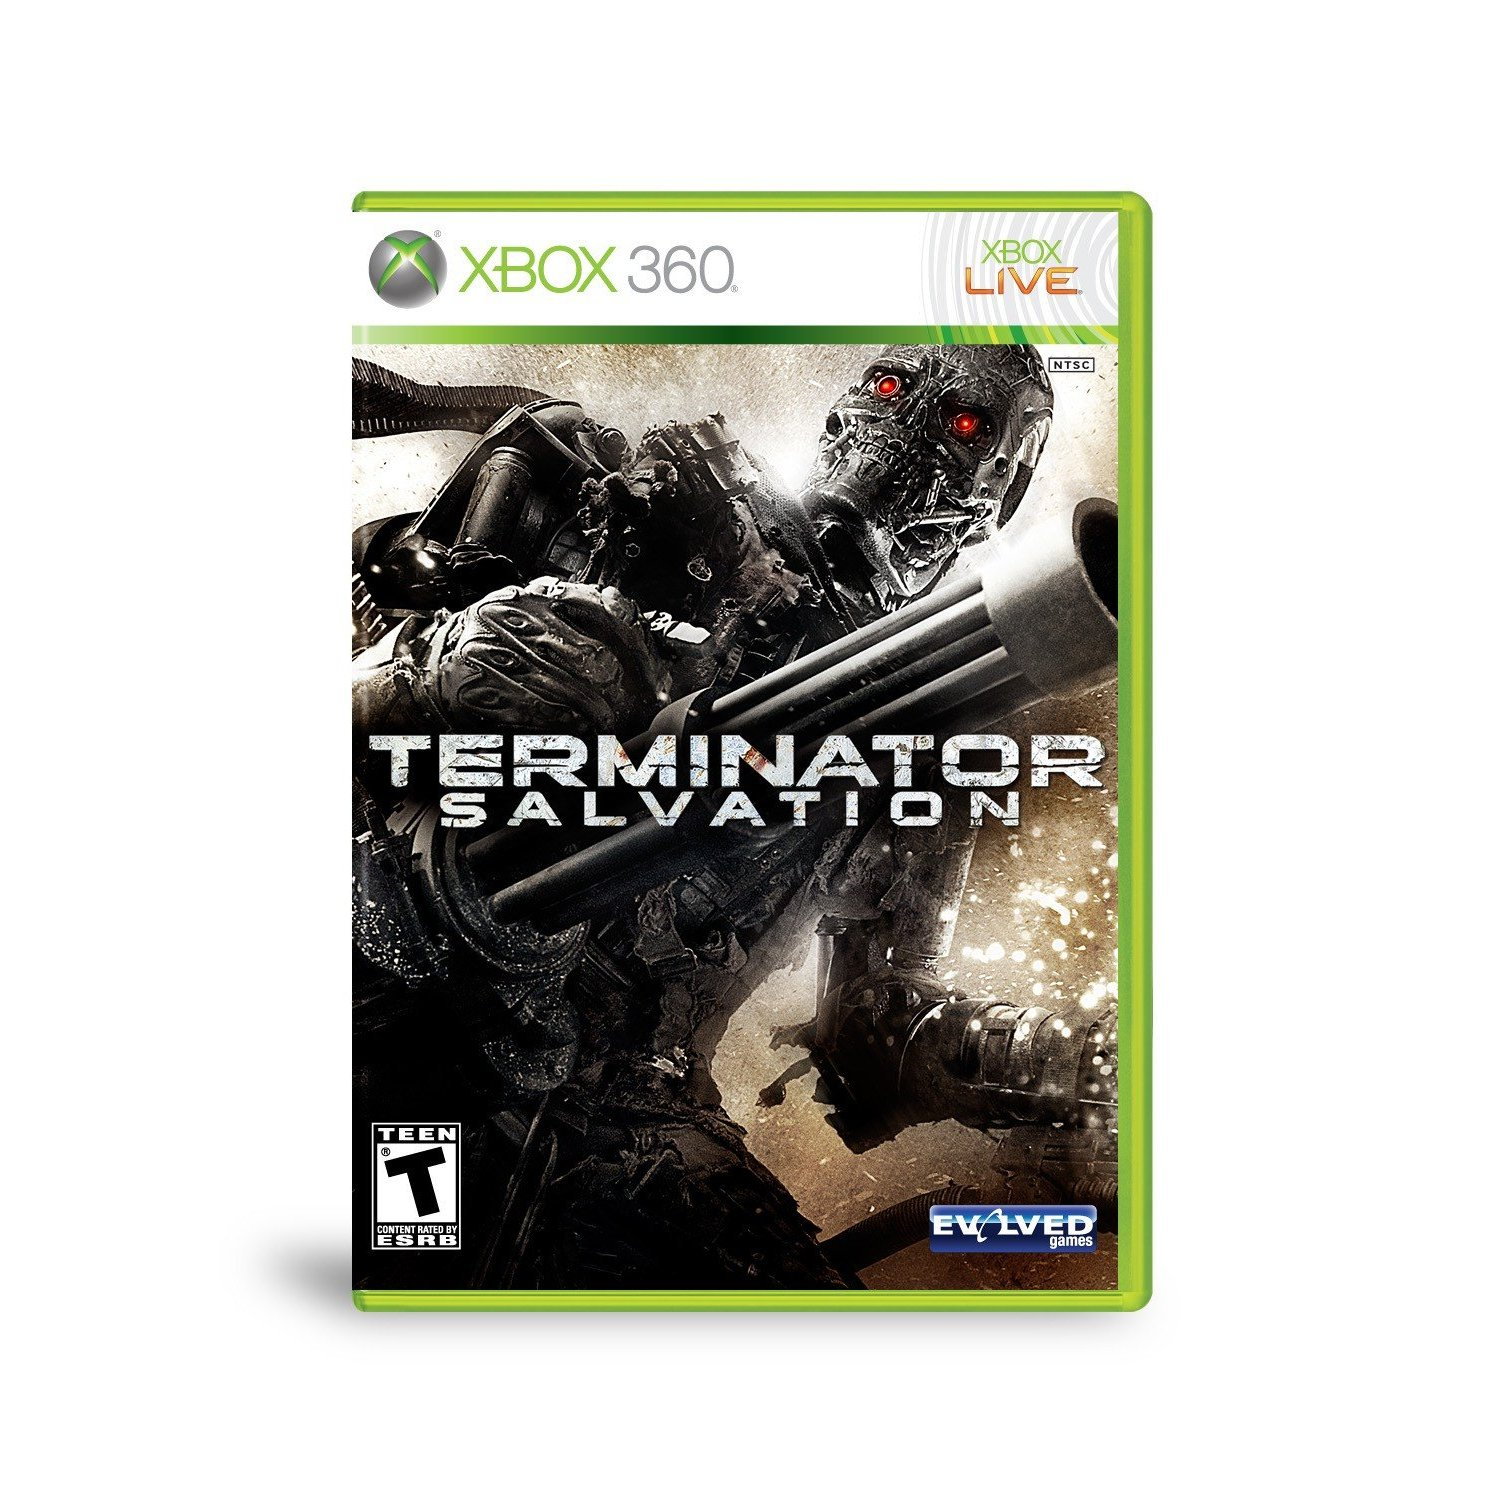 360: TERMINATOR SALVATION (GAME)